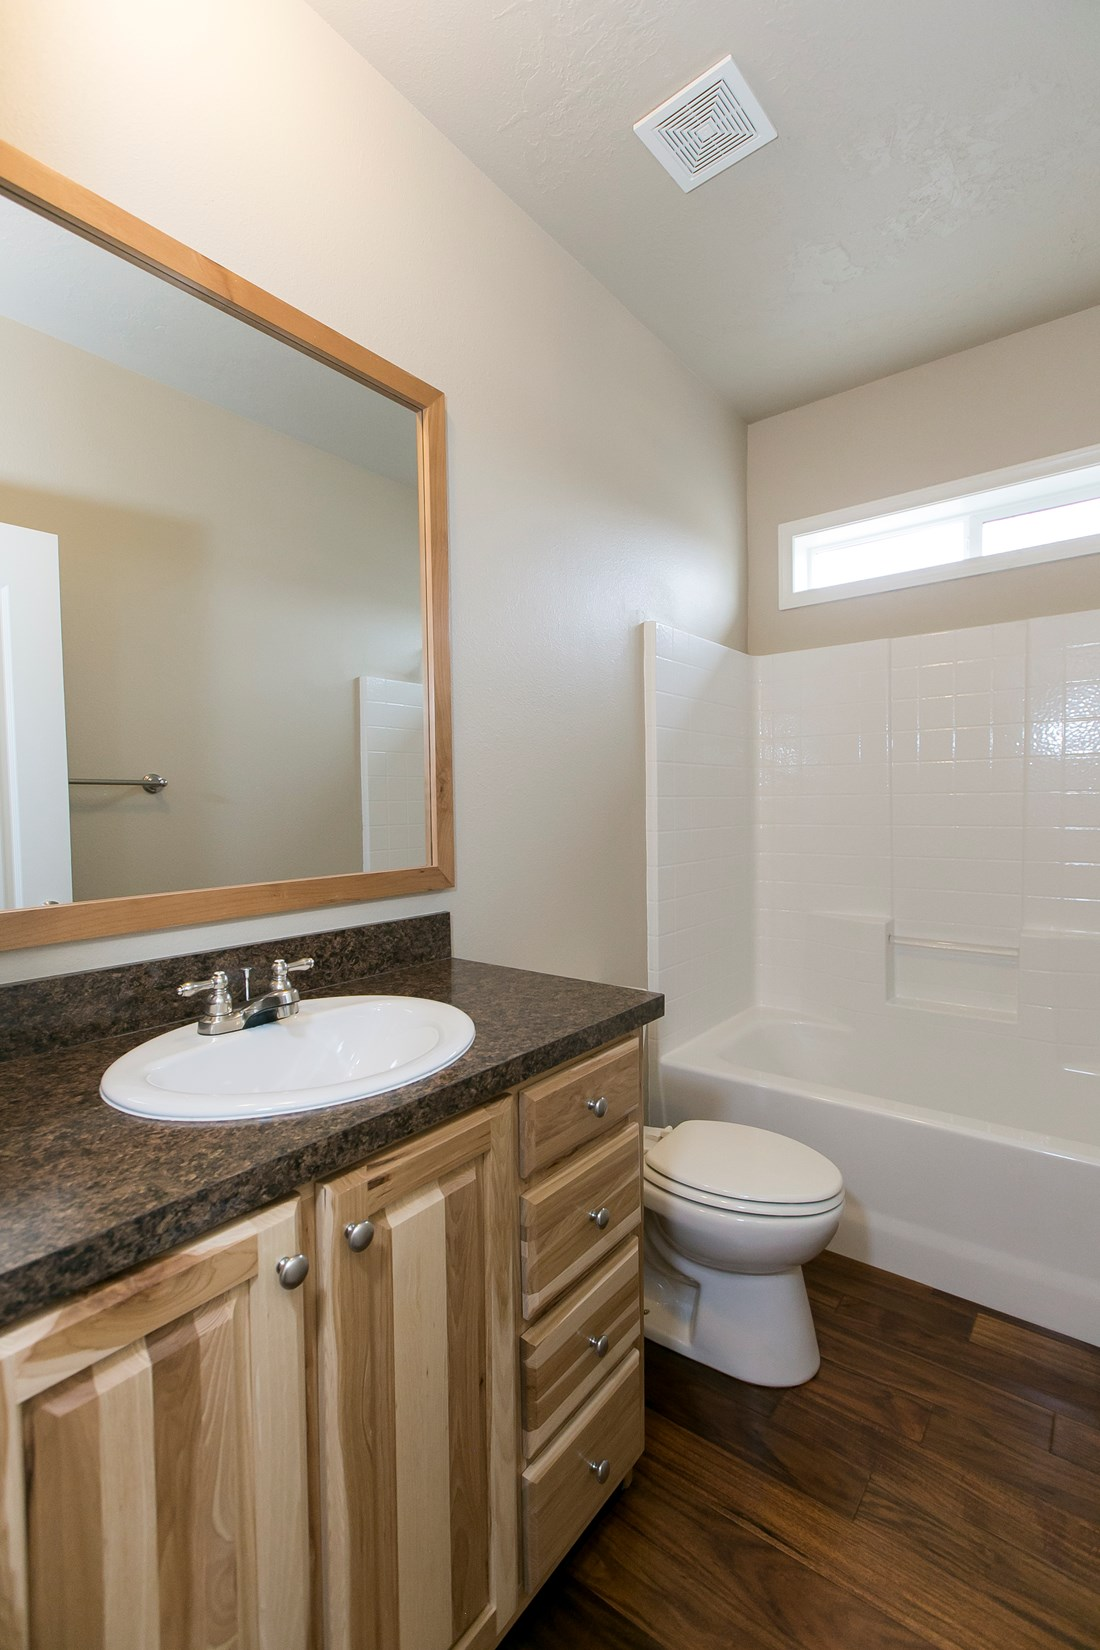 The THE SPRUCE Guest Bathroom. This Manufactured Mobile Home features 3 bedrooms and 2 baths.